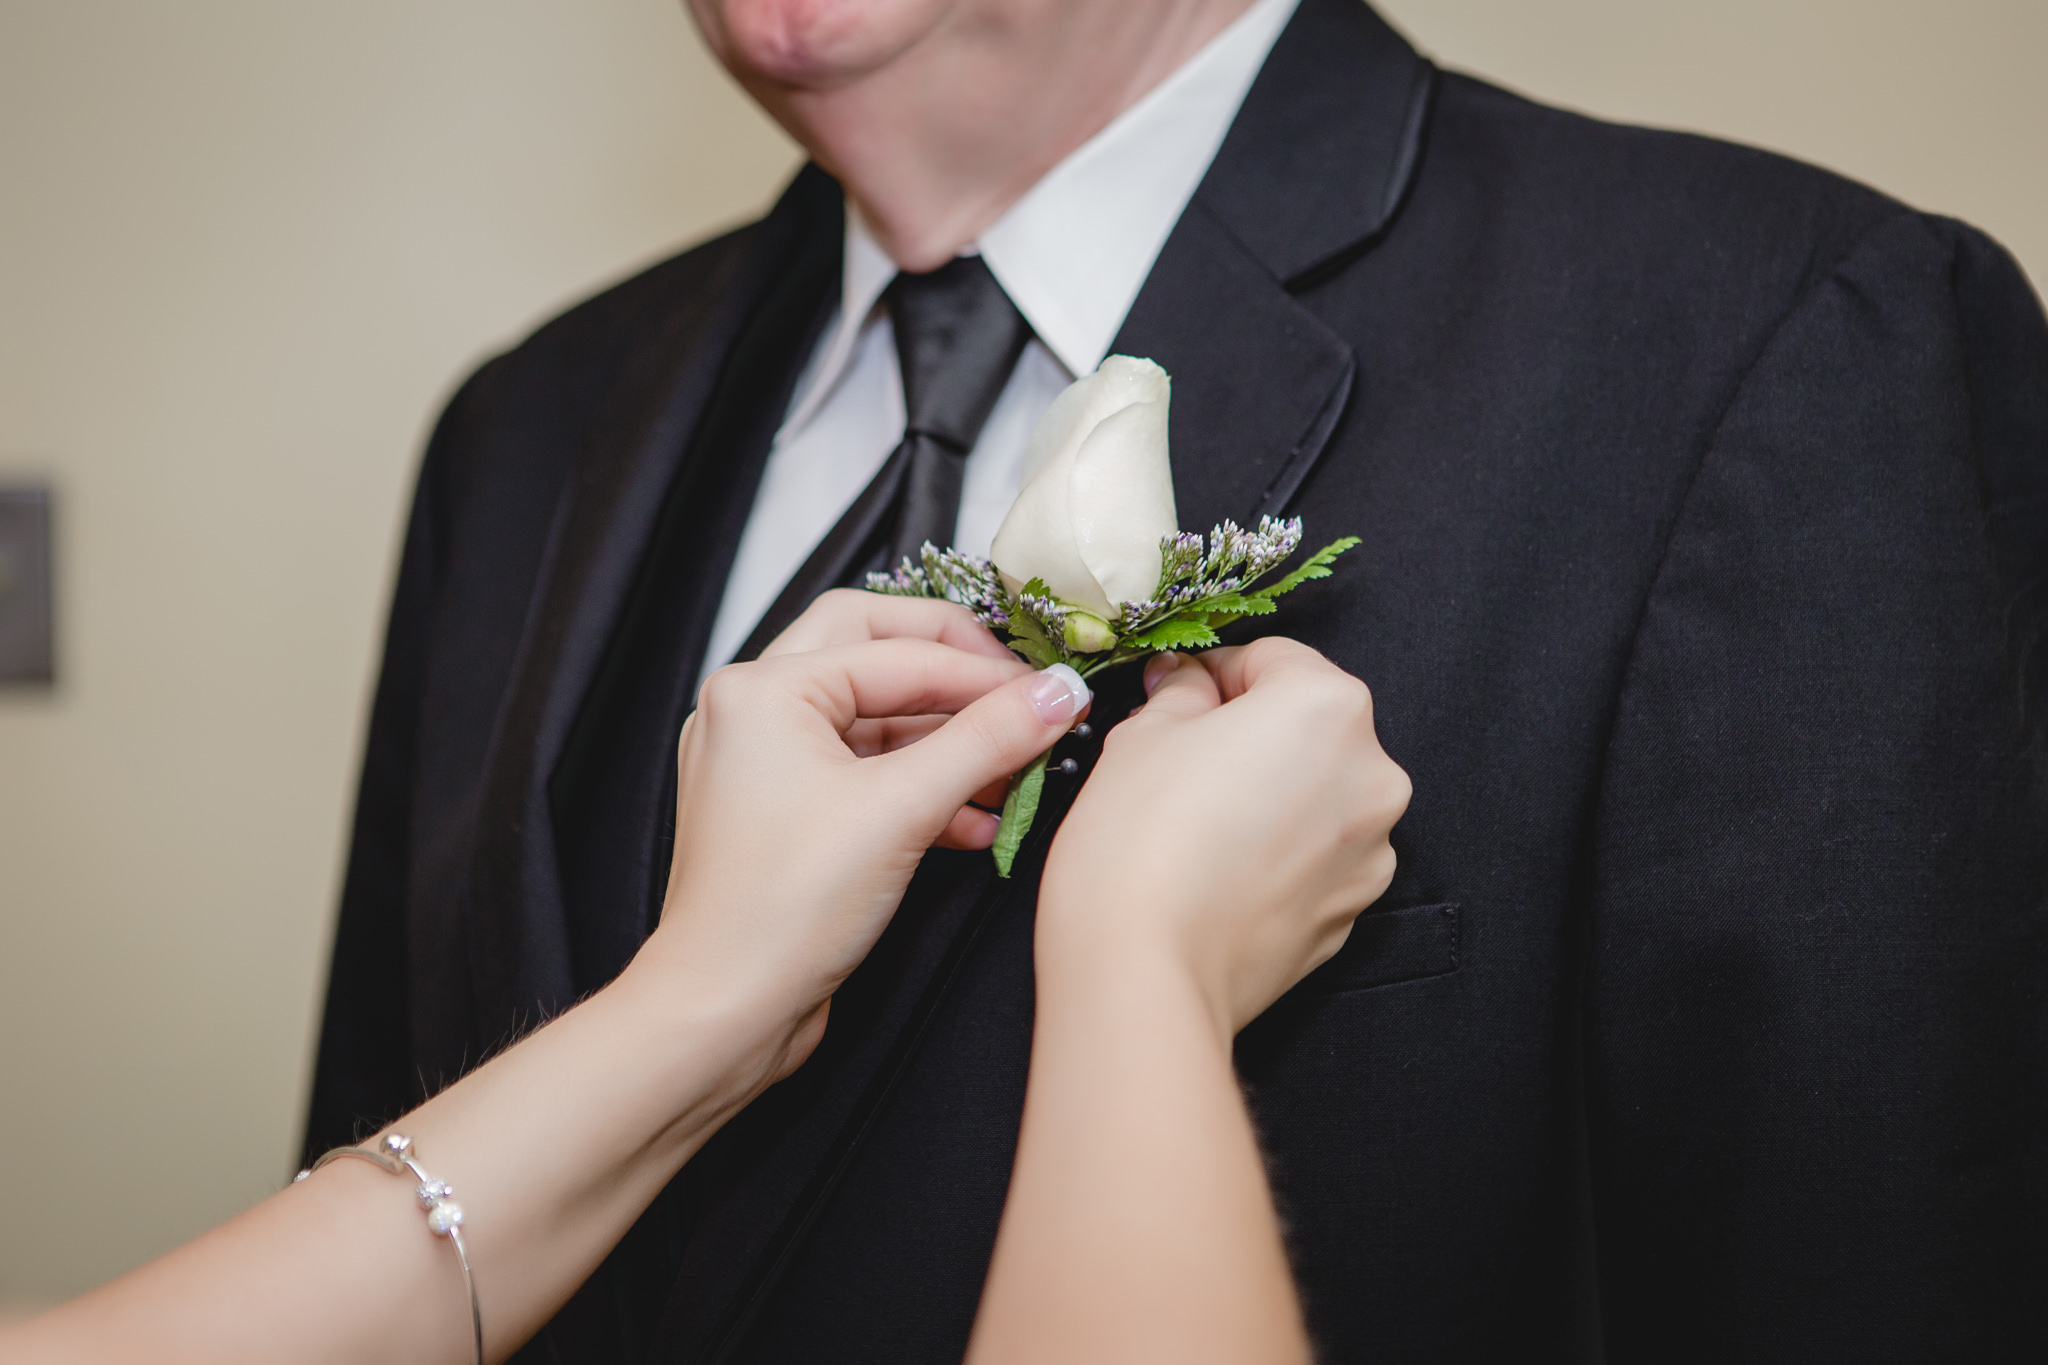 Father of the bride's boutonniere